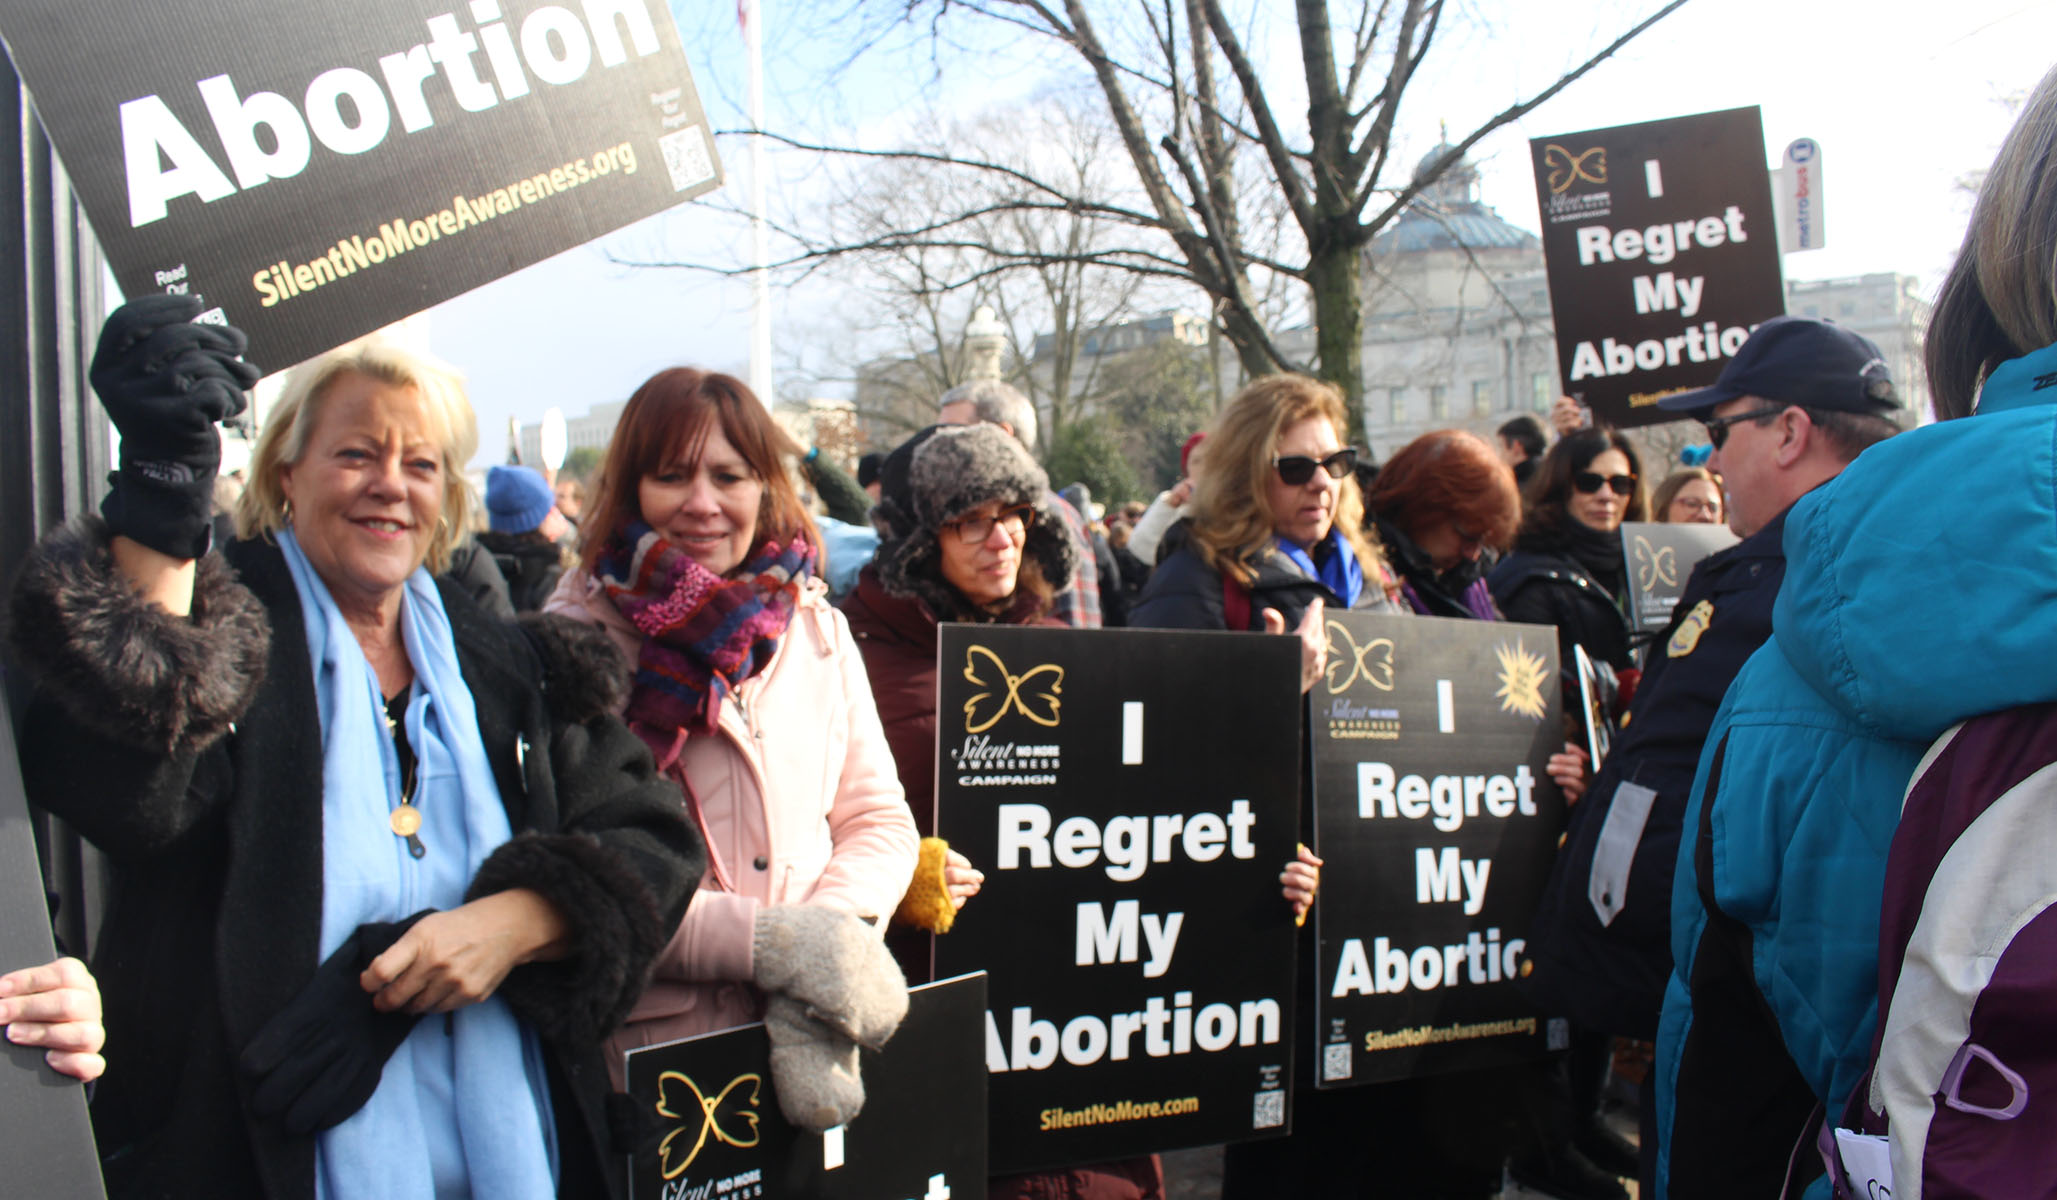 March for Life 2019 -- Women Regret Their Abortions Publicly